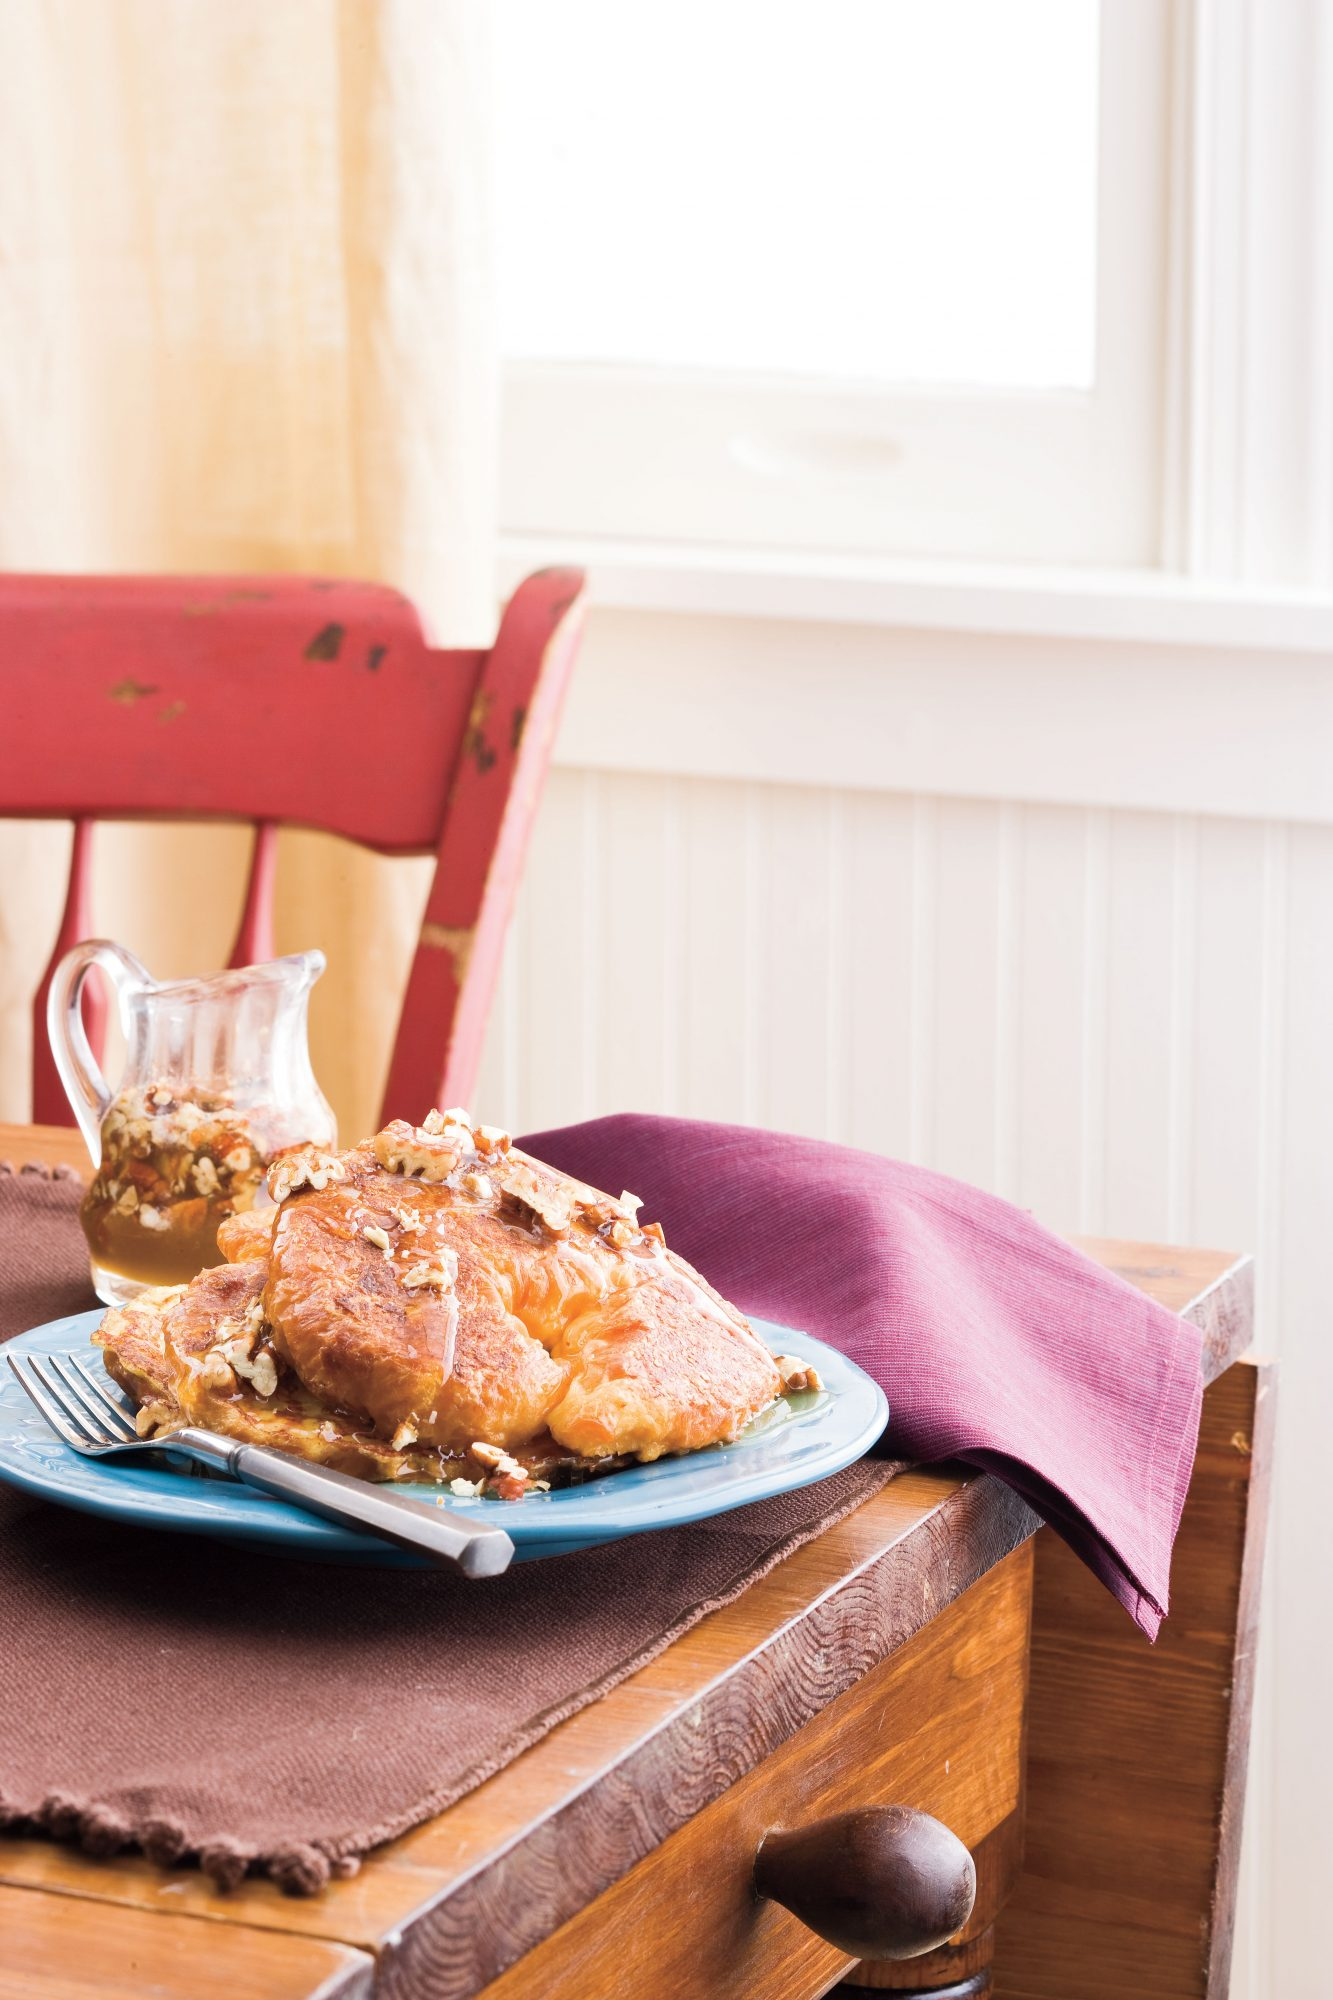 Croissant French Toast with Pecans